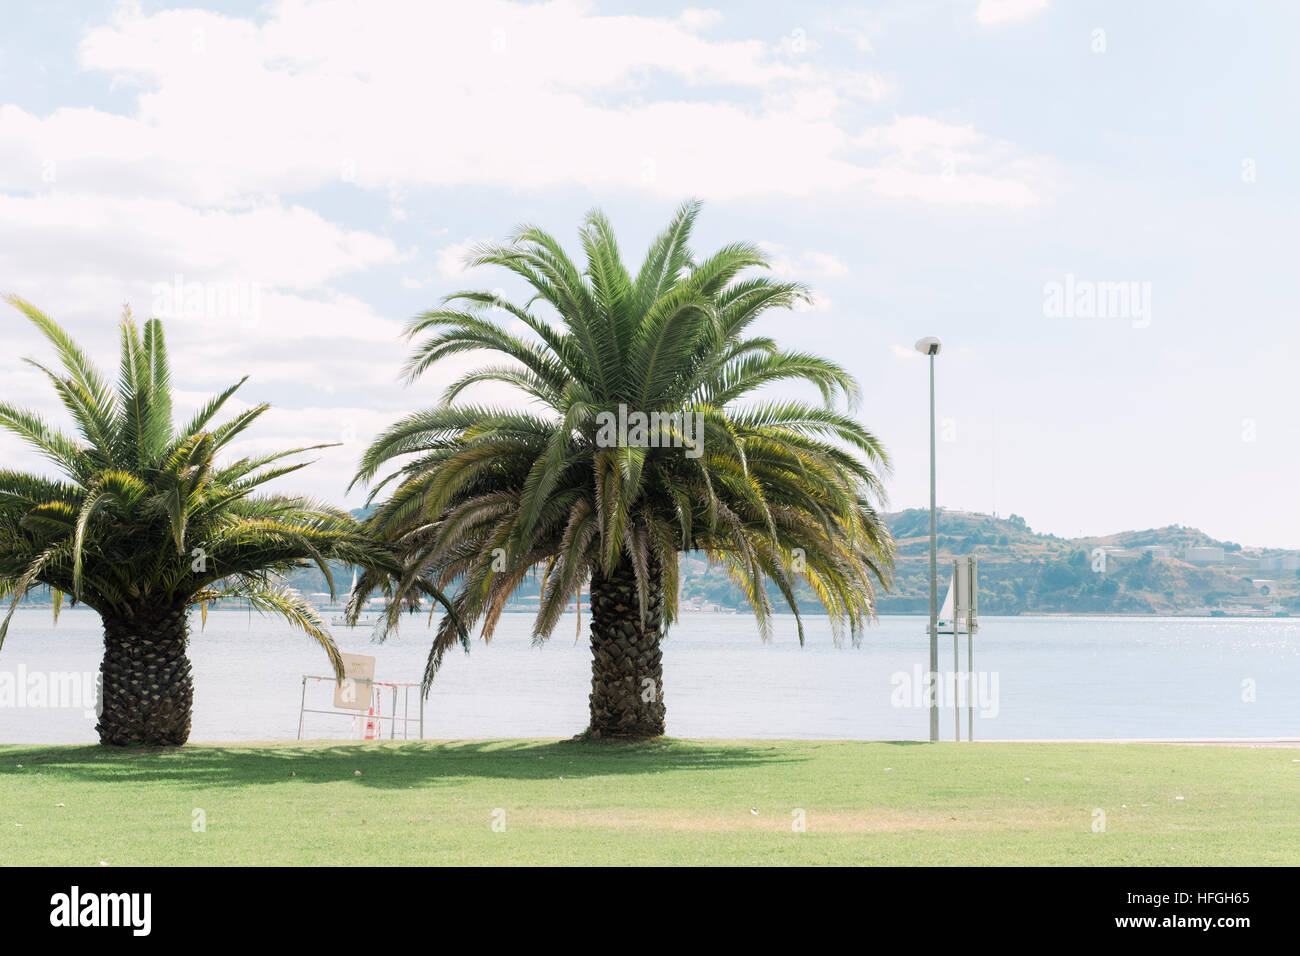 Palm trees near the Tage River - Stock Image